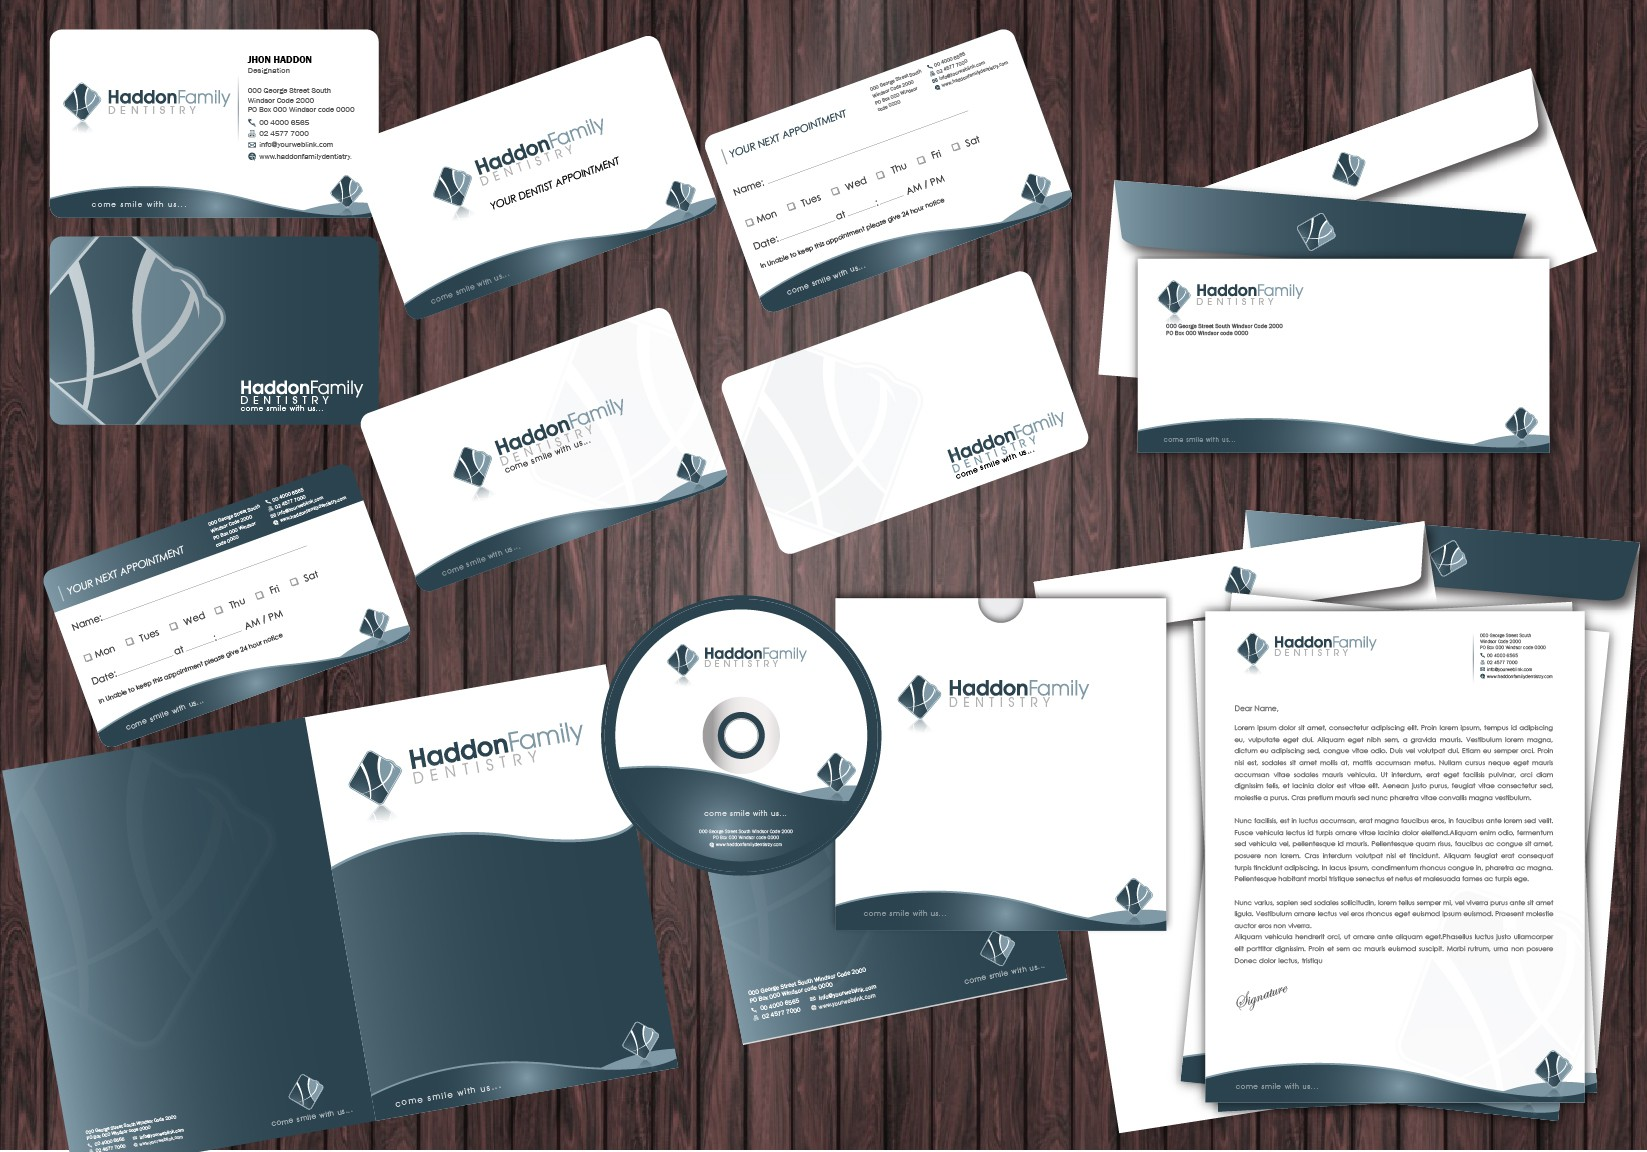 stationery for Haddon Family Dentistry